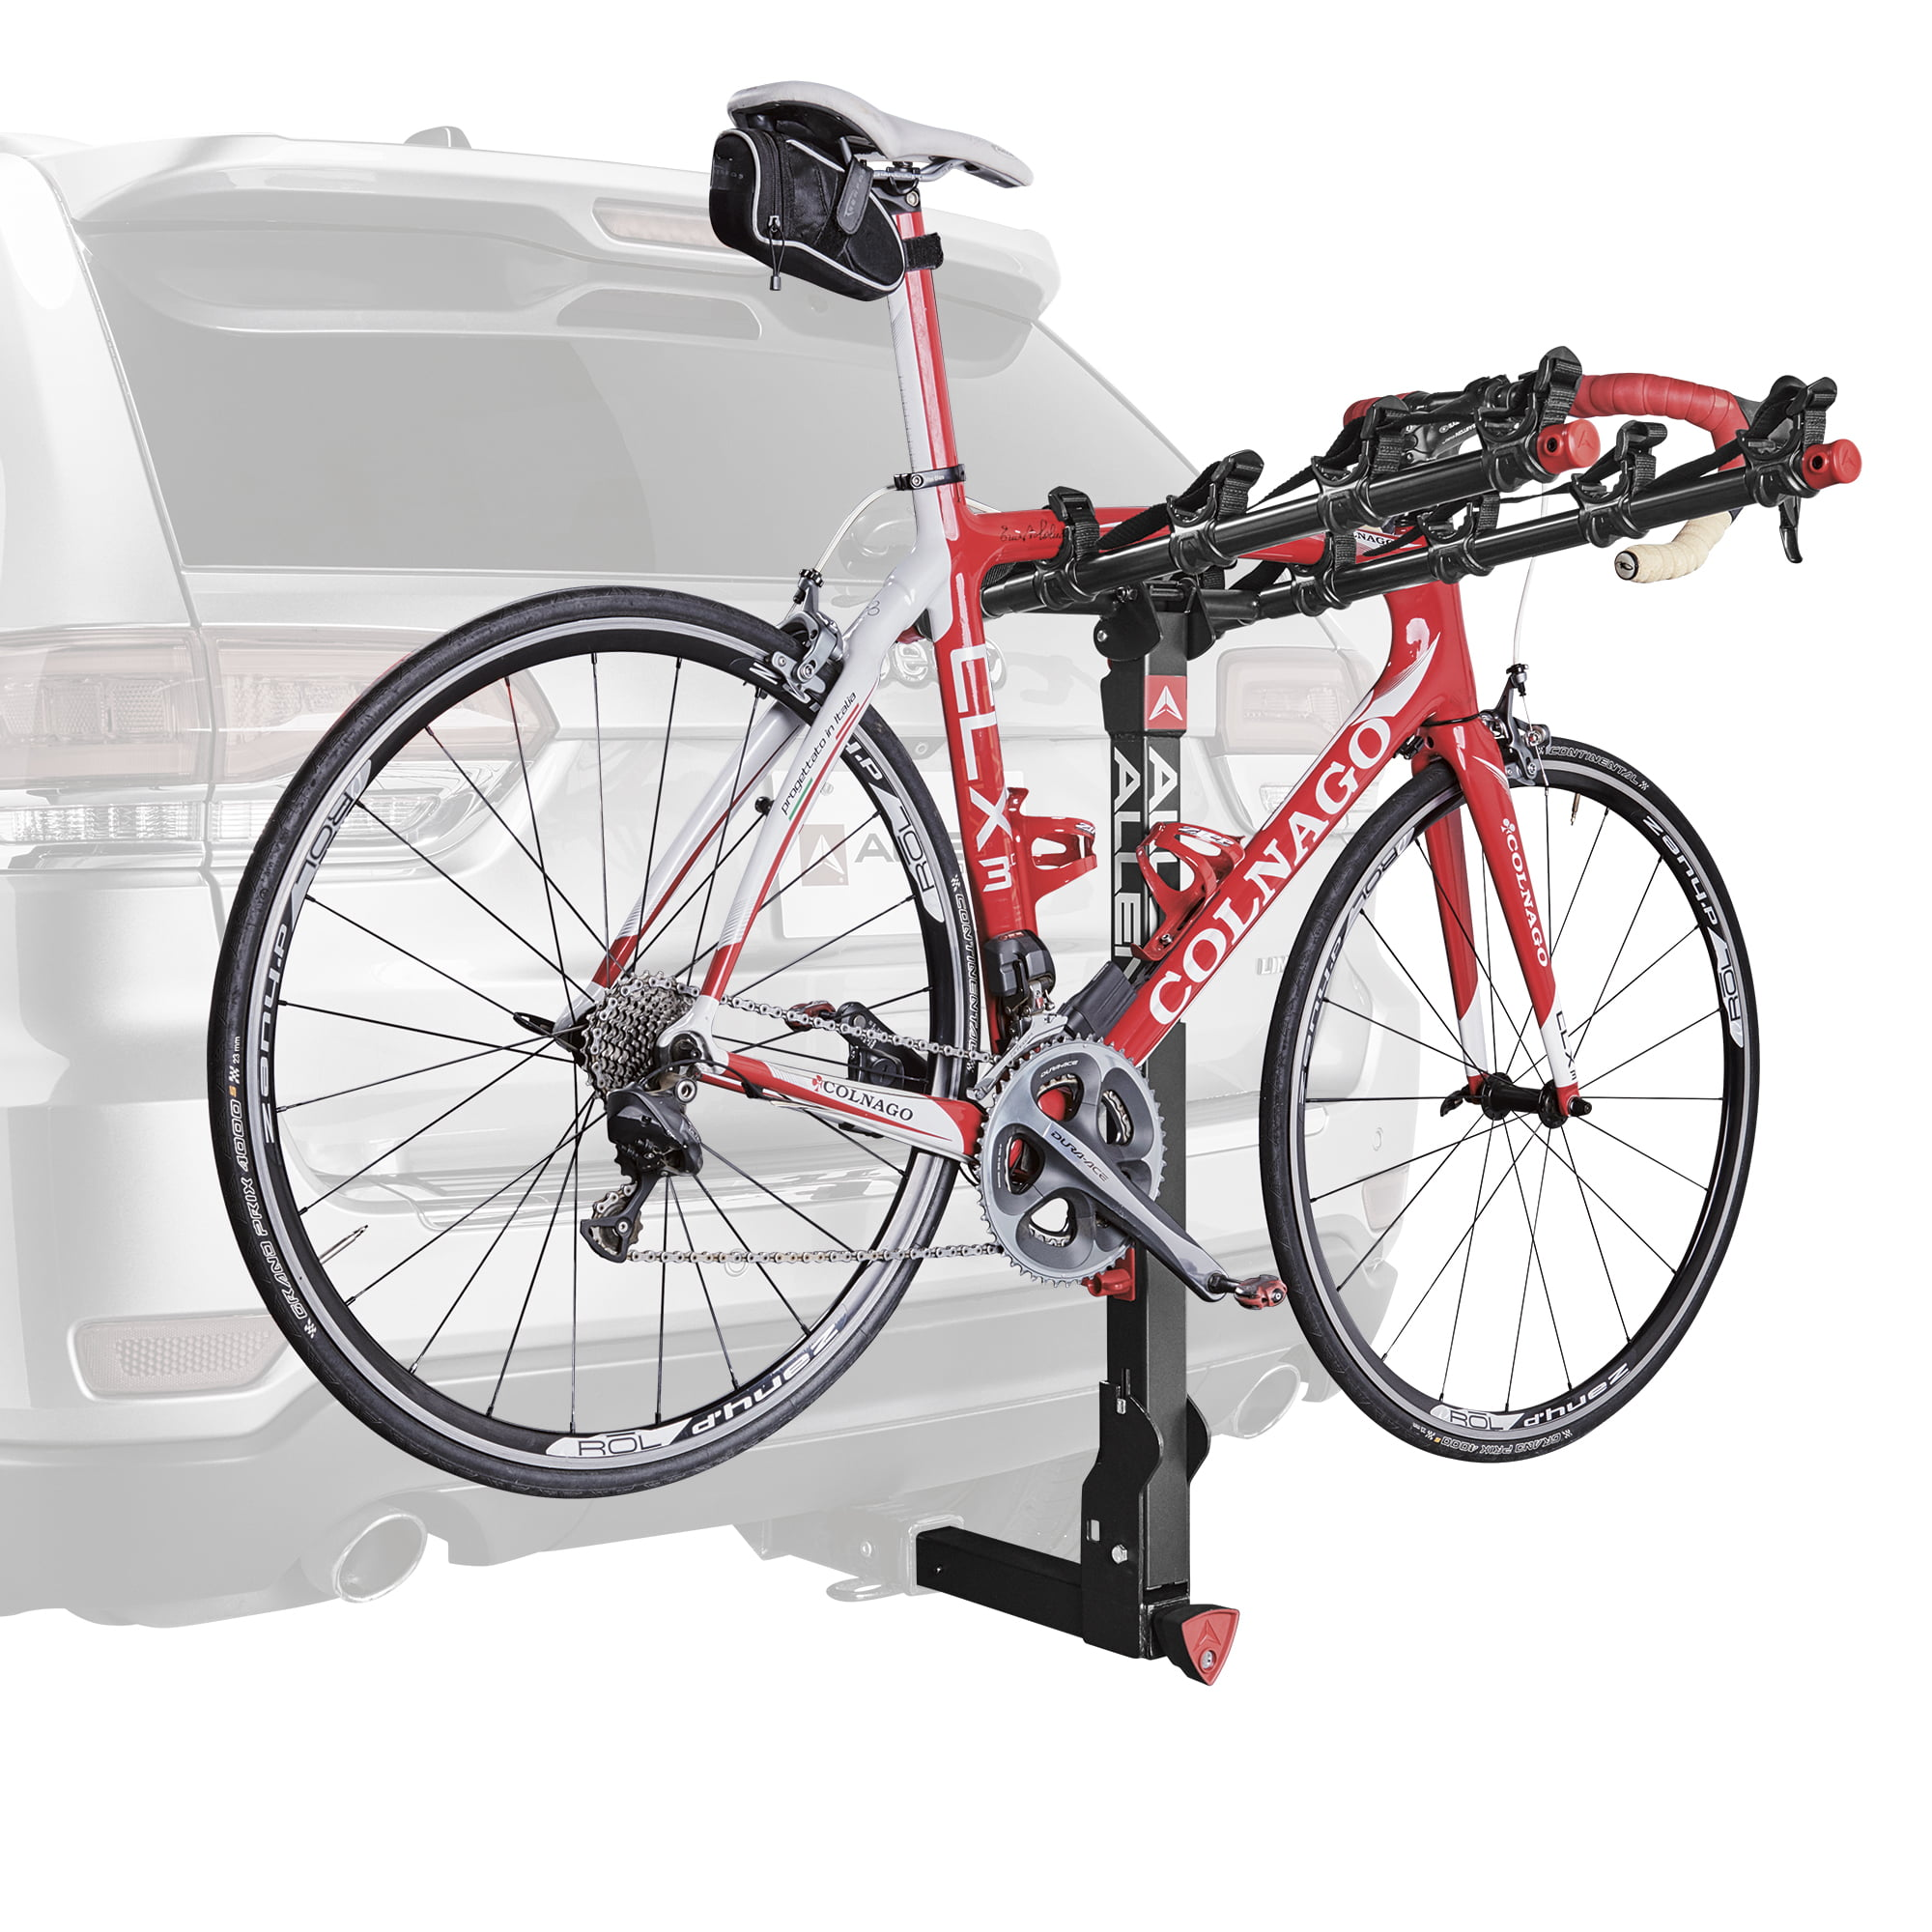 Rack Bike Hitch Mount Allen Sports 2 3 4 5 Key Locking Bicycle Trailer 2 Inch